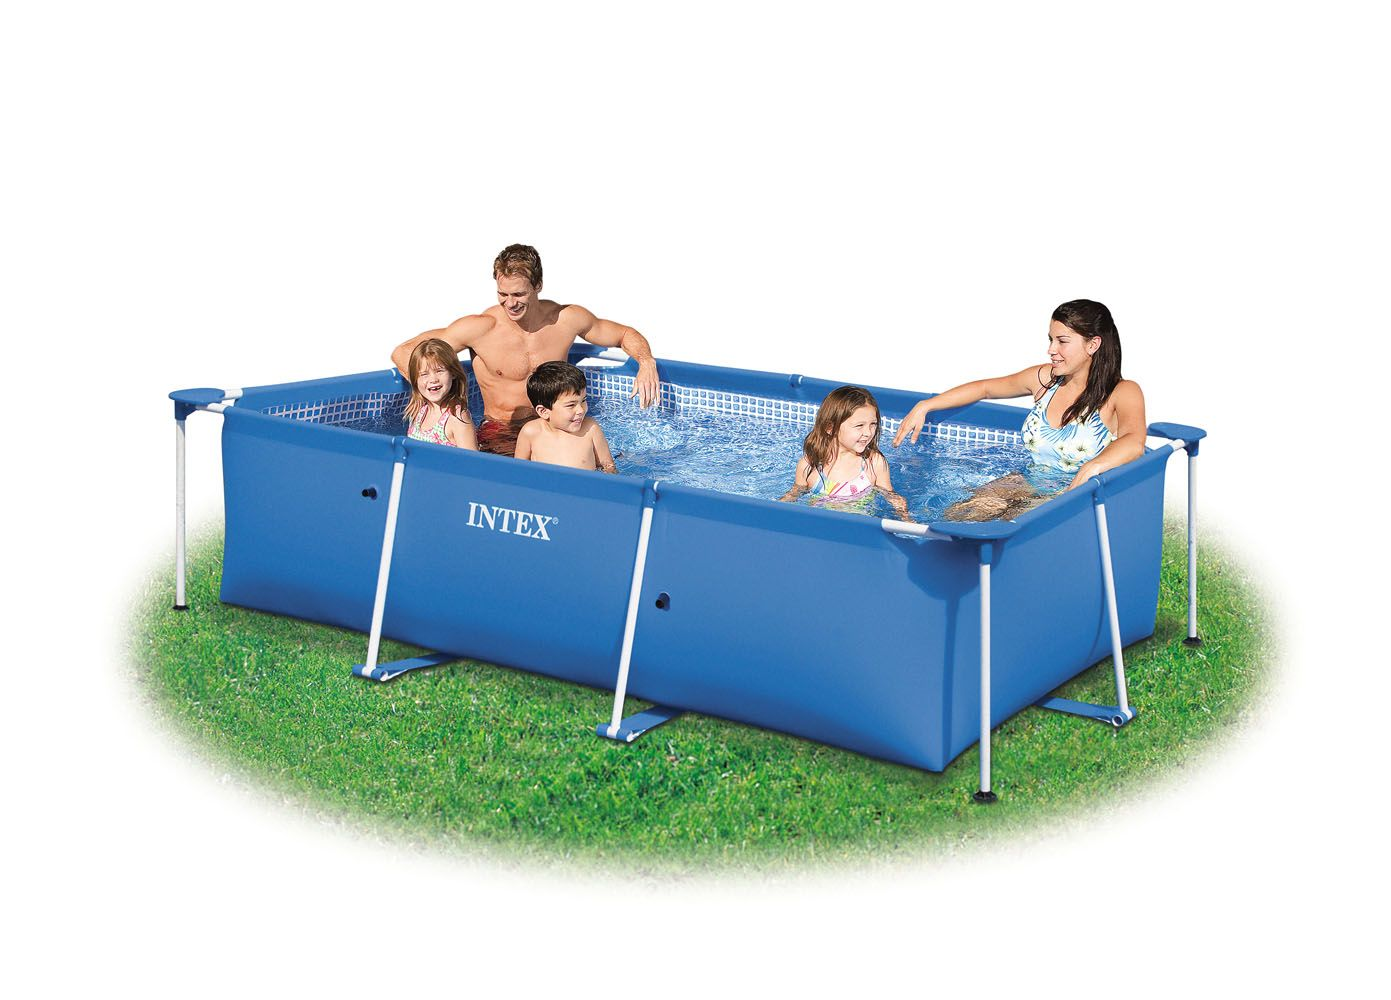 Piscine rectangulaire hors sol intex intex for Auchan piscine